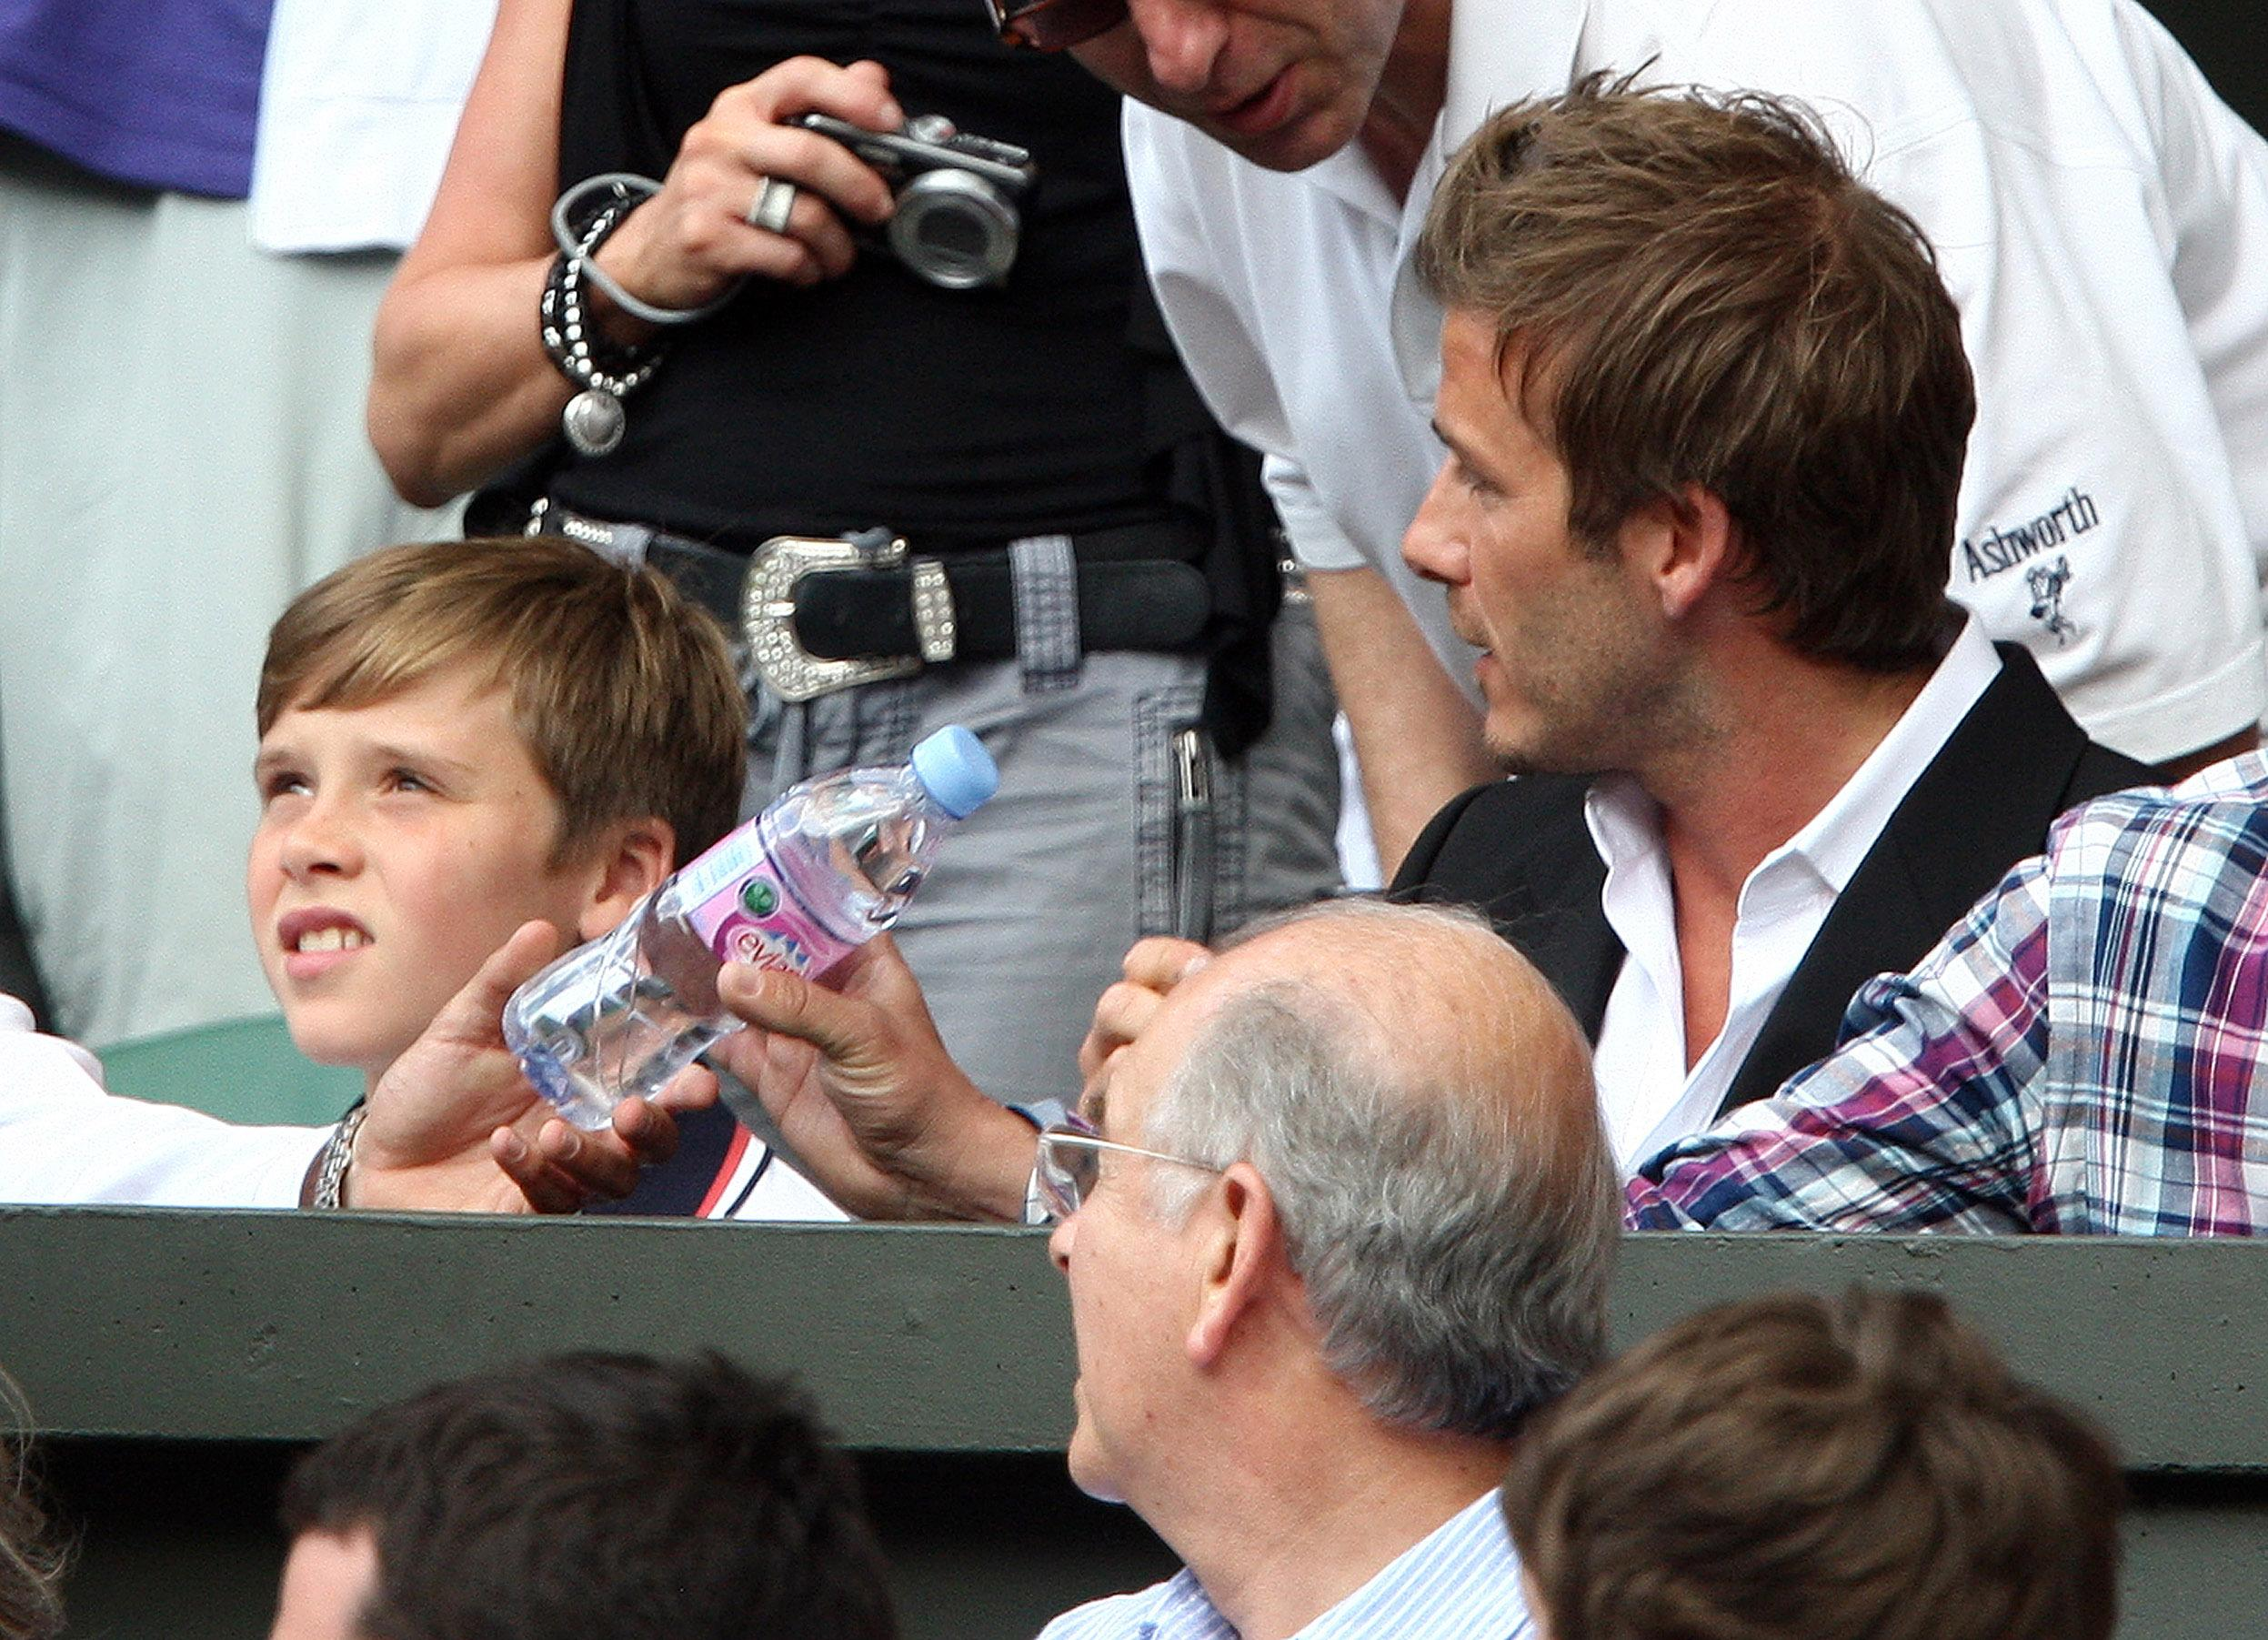 Tennis - Wimbledon - All England Lawn Tennis & Croquet Club, Wimbledon, England - 2/7/10  David Beckham (R) with his son Brooklyn in the stands during Great Britain's Andy Murray  semi final match  Mandatory Credit: Action Images / Paul Childs  Livepic